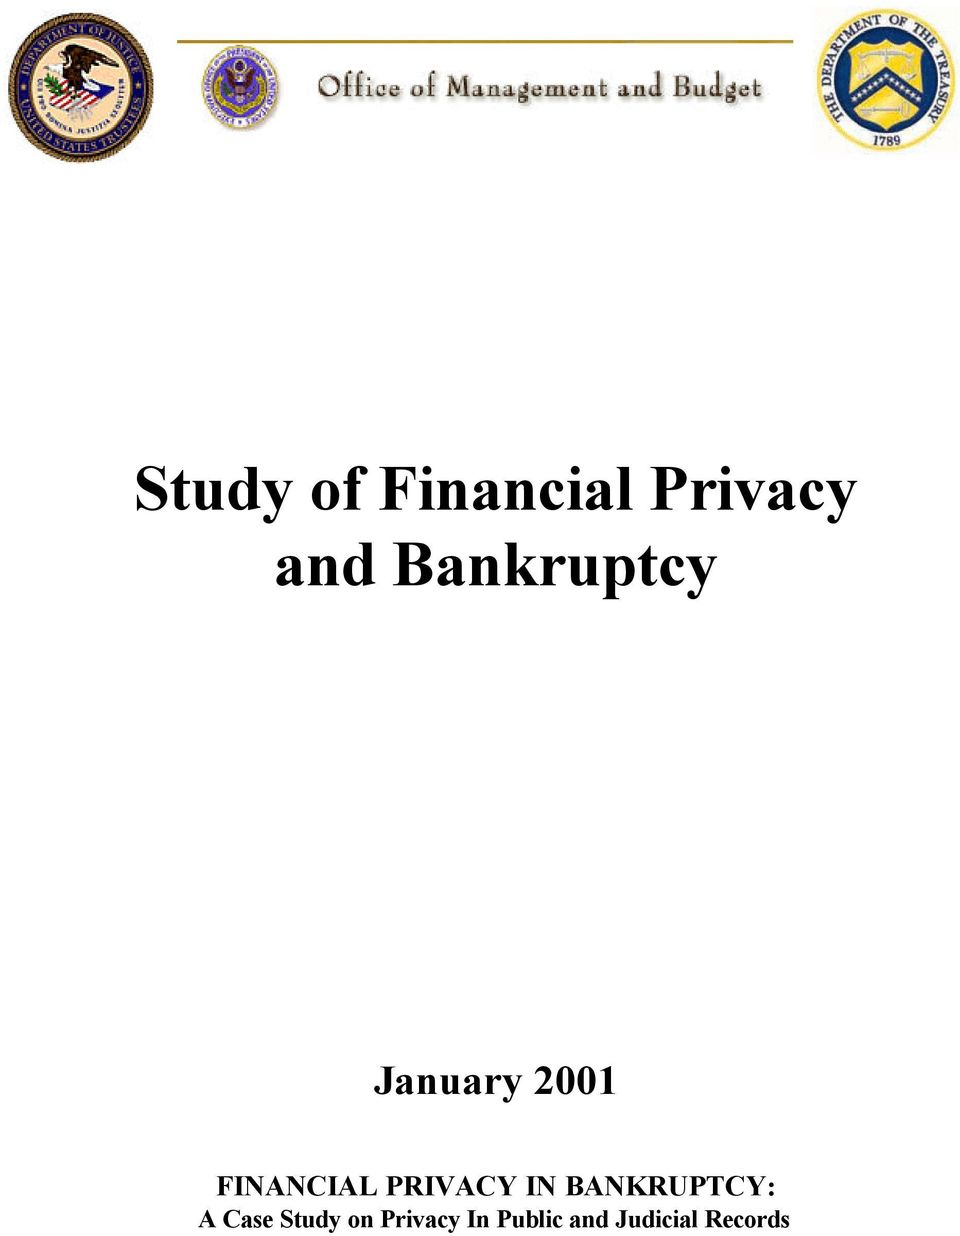 PRIVACY IN BANKRUPTCY: A Case Study